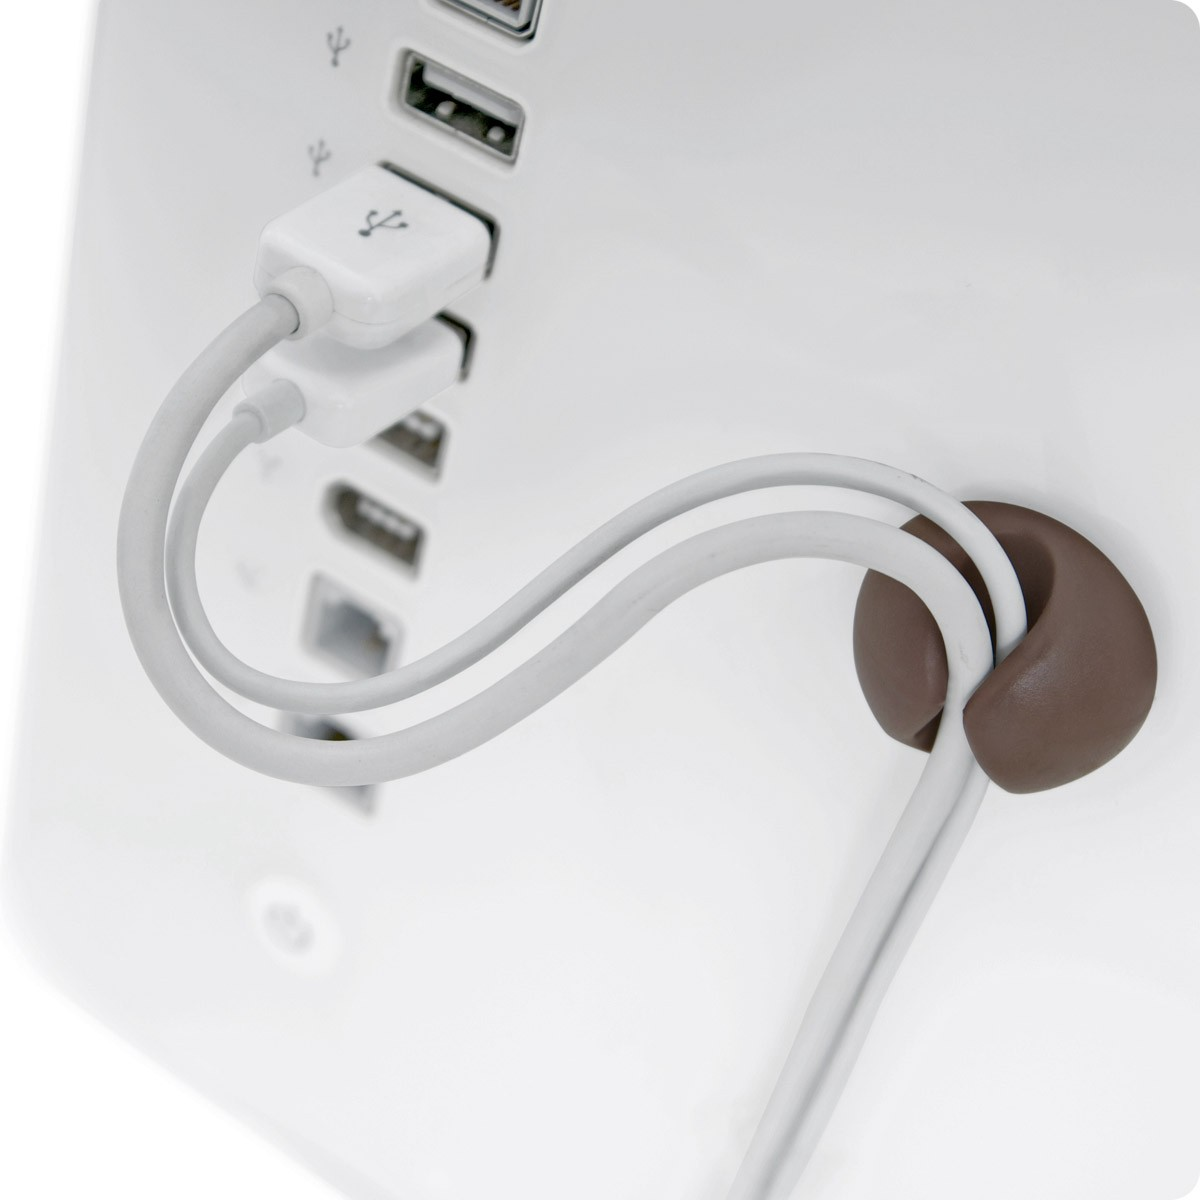 Bluelounge CableDrop - Cable Clips - Muted Colours, CD-MT